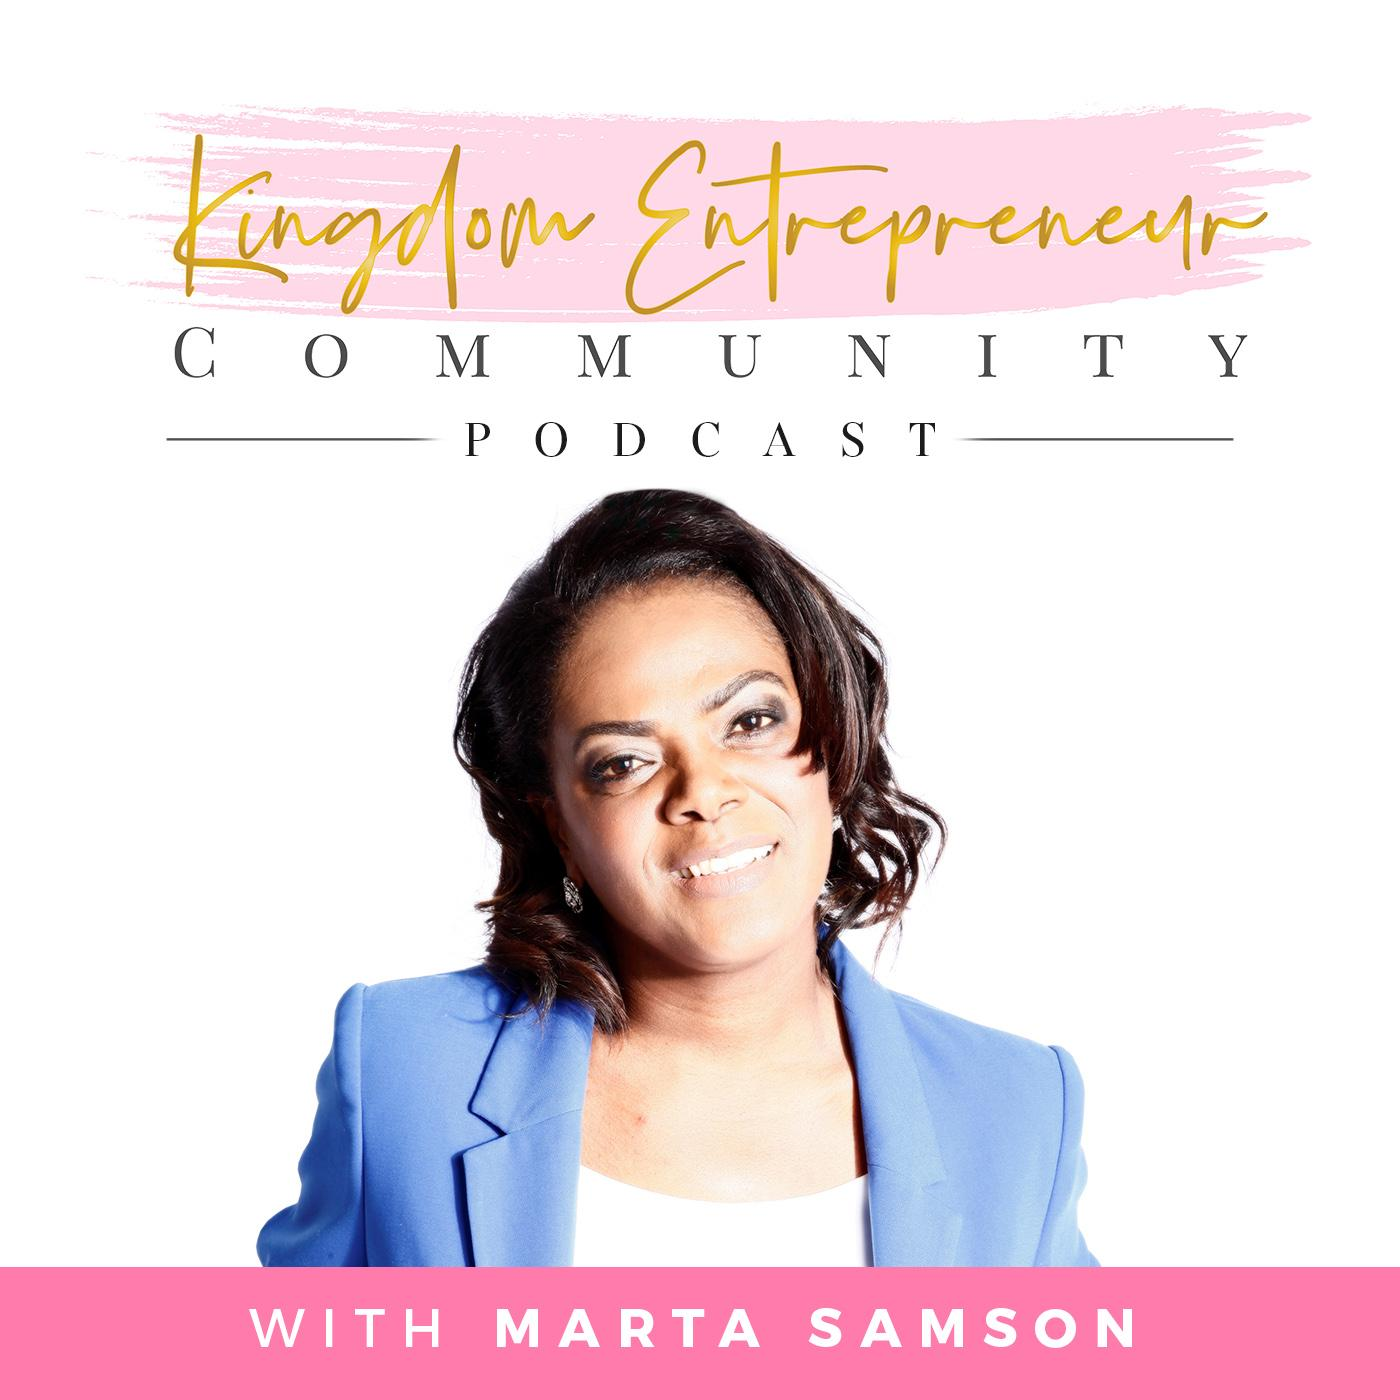 47 From Start to Success in 30 days with LaToya Early